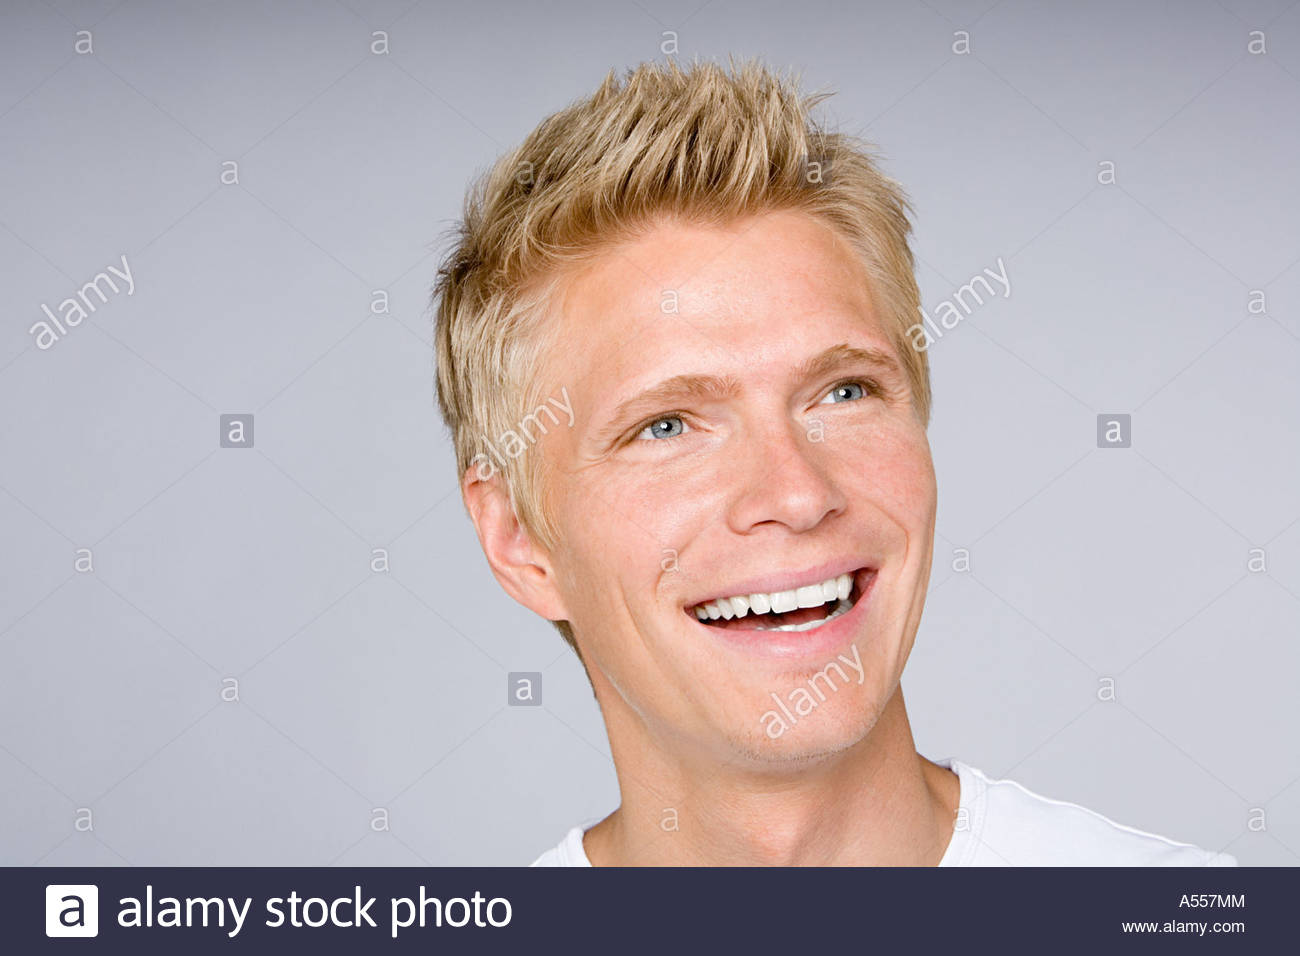 Portrait of a smiling young man - Stock Image